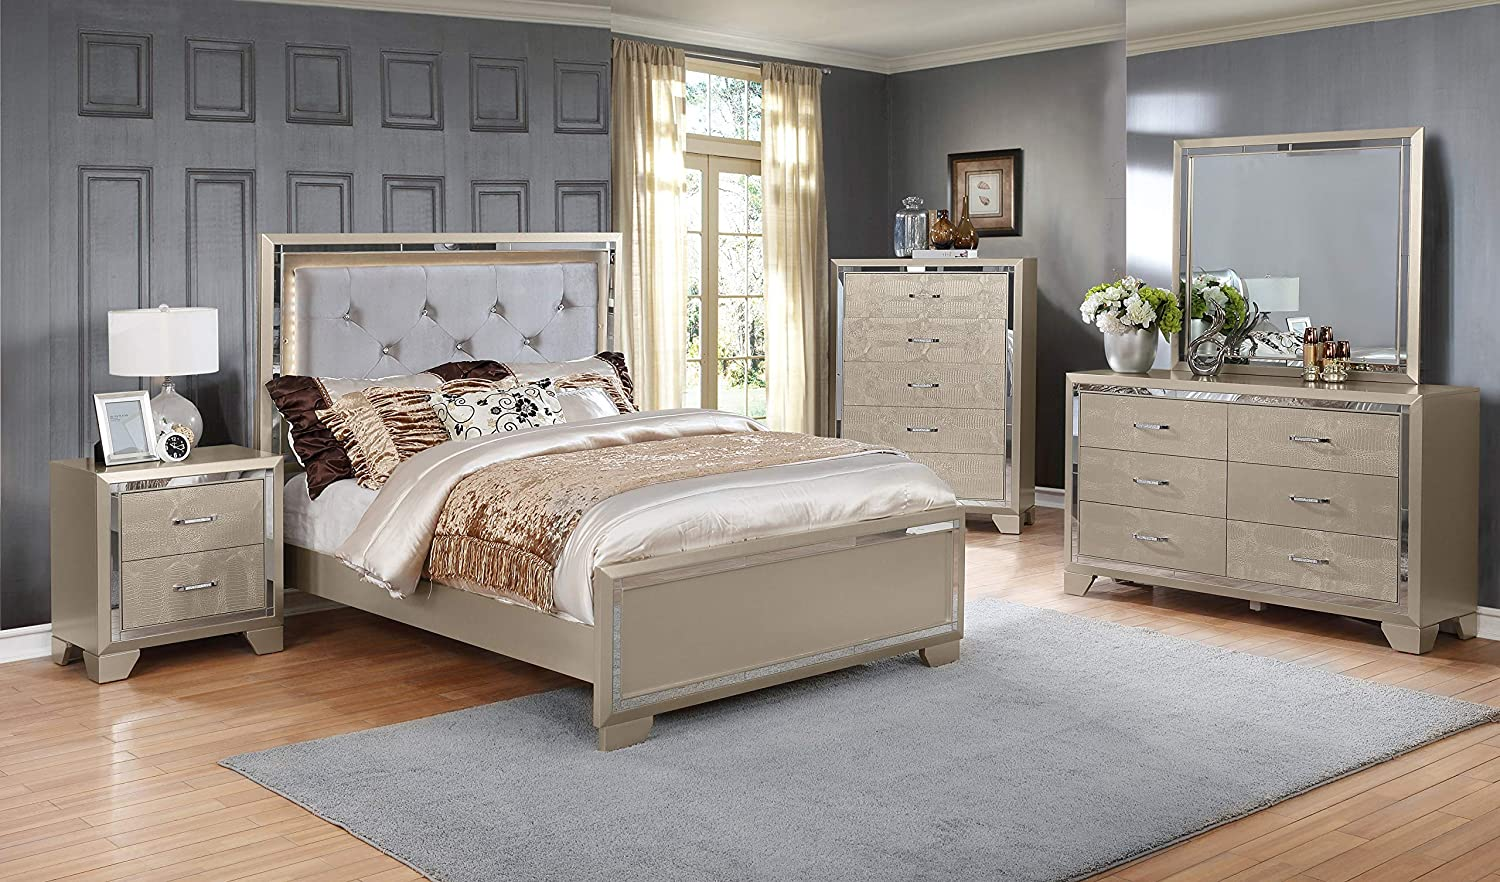 GTU Furniture Contemporary Metallic Gold and Silver Style Wooden 5Pc King Bedroom Set(K/D/M/N/C)